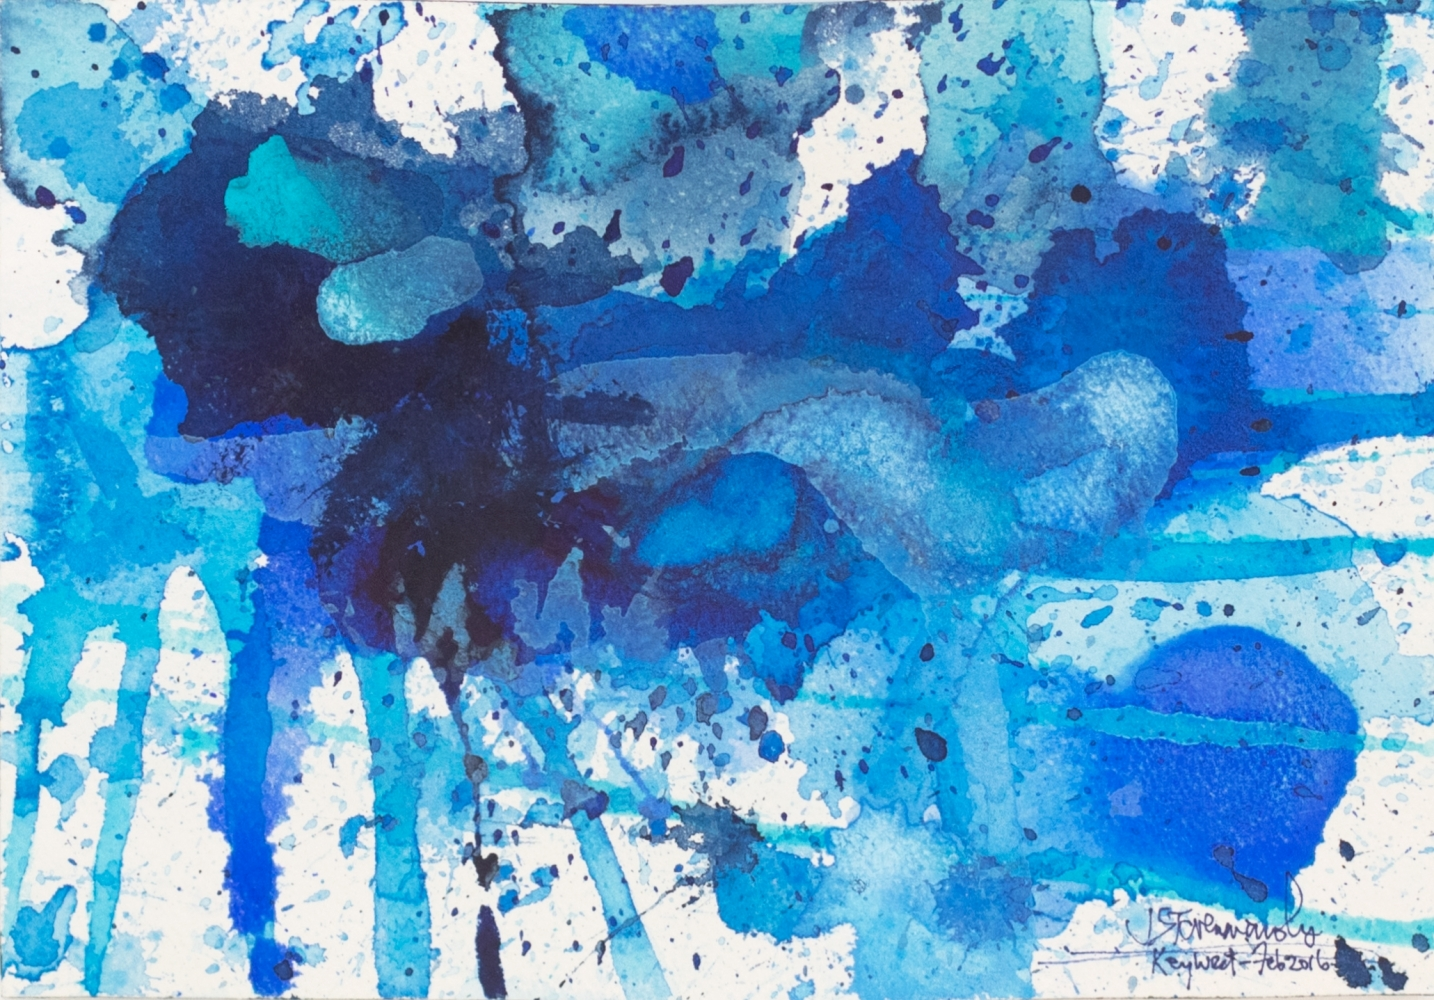 J. Steven Manolis, Splash (Key West) 07.10.06, Watercolor painting Arches paper, 2016, 7 x 10 inches, Blue Abstract Art, Splash Art for sale at Manolis Projects Art Gallery, Miami, Fl